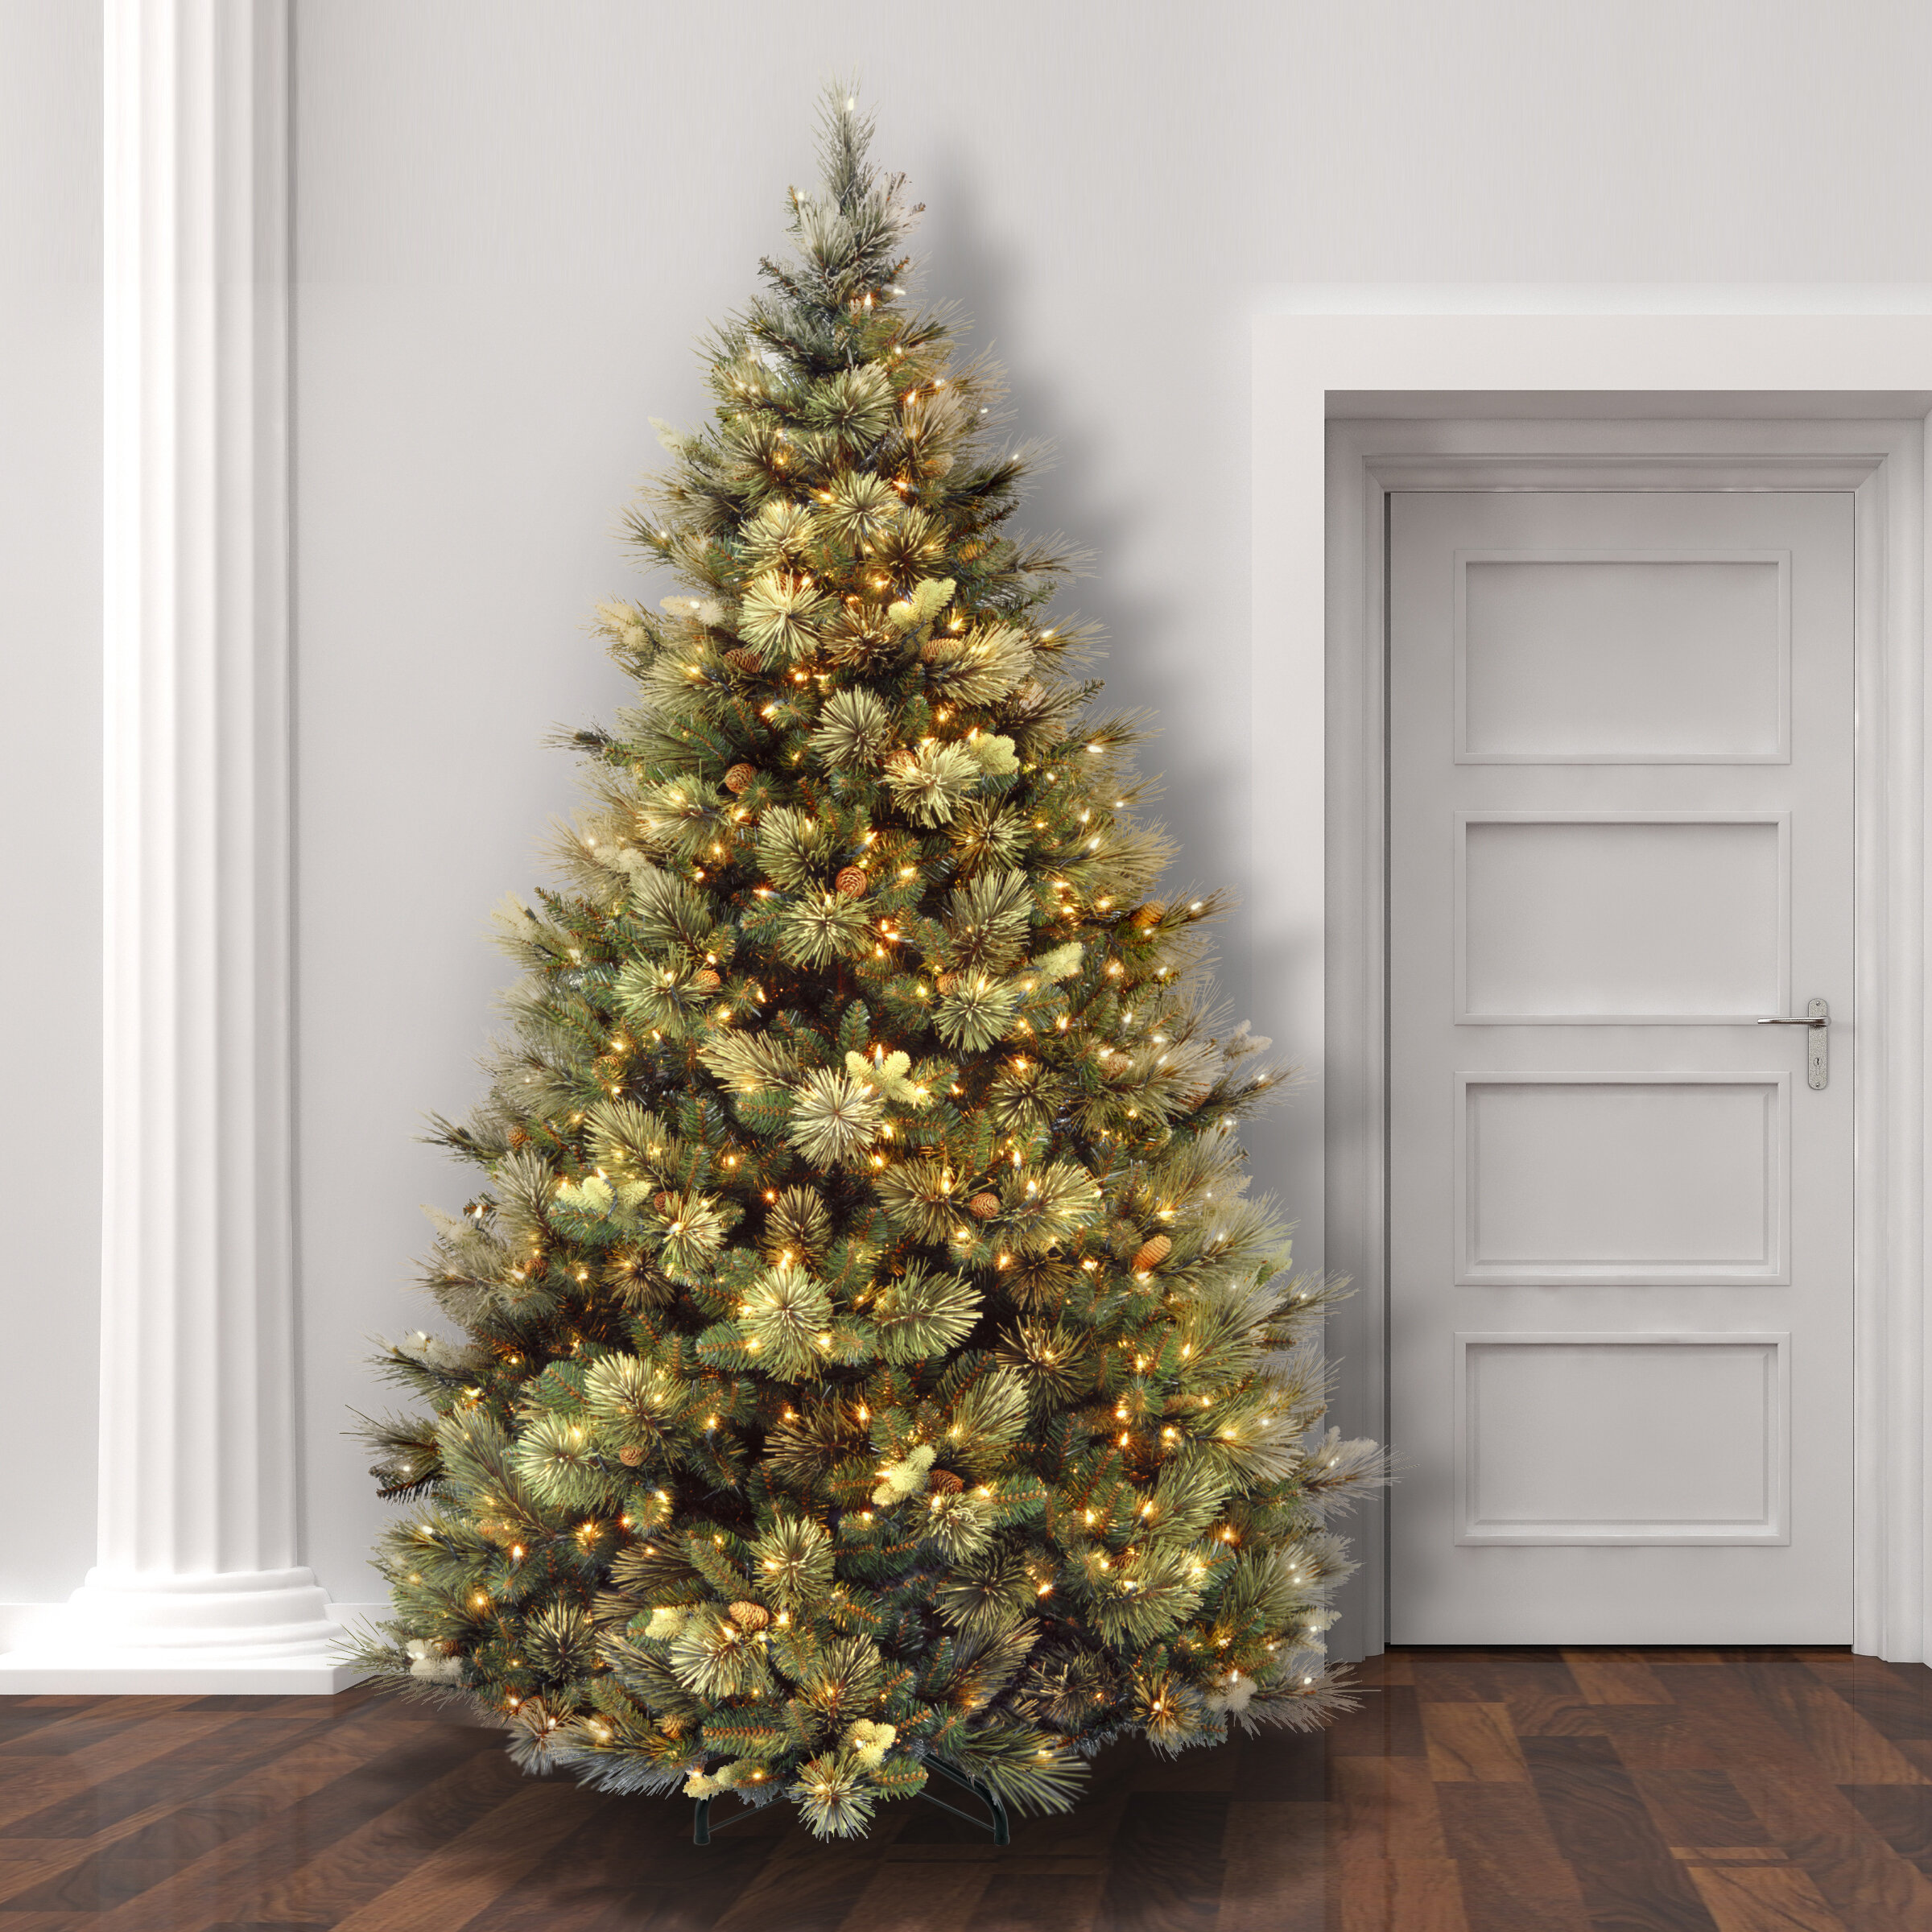 Artifical Christmas Trees.Green Pine Artificial Christmas Tree With Clear White Lights